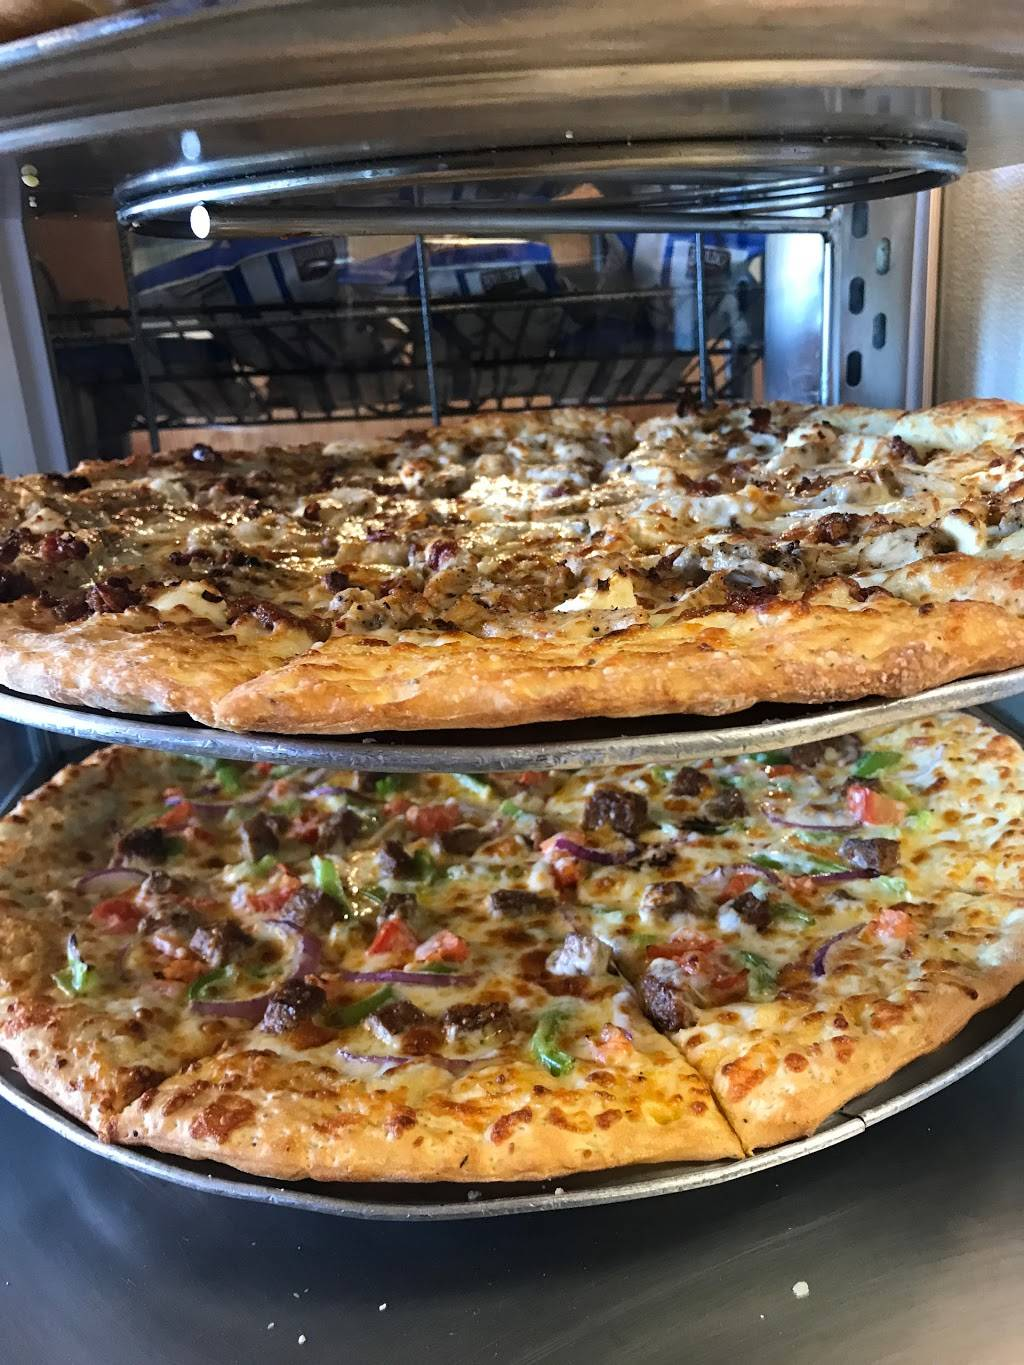 Mama Ronis Pizza | meal delivery | 1006 Spring Creek Ln b4, Fort Collins, CO 80526, USA | 9702249000 OR +1 970-224-9000